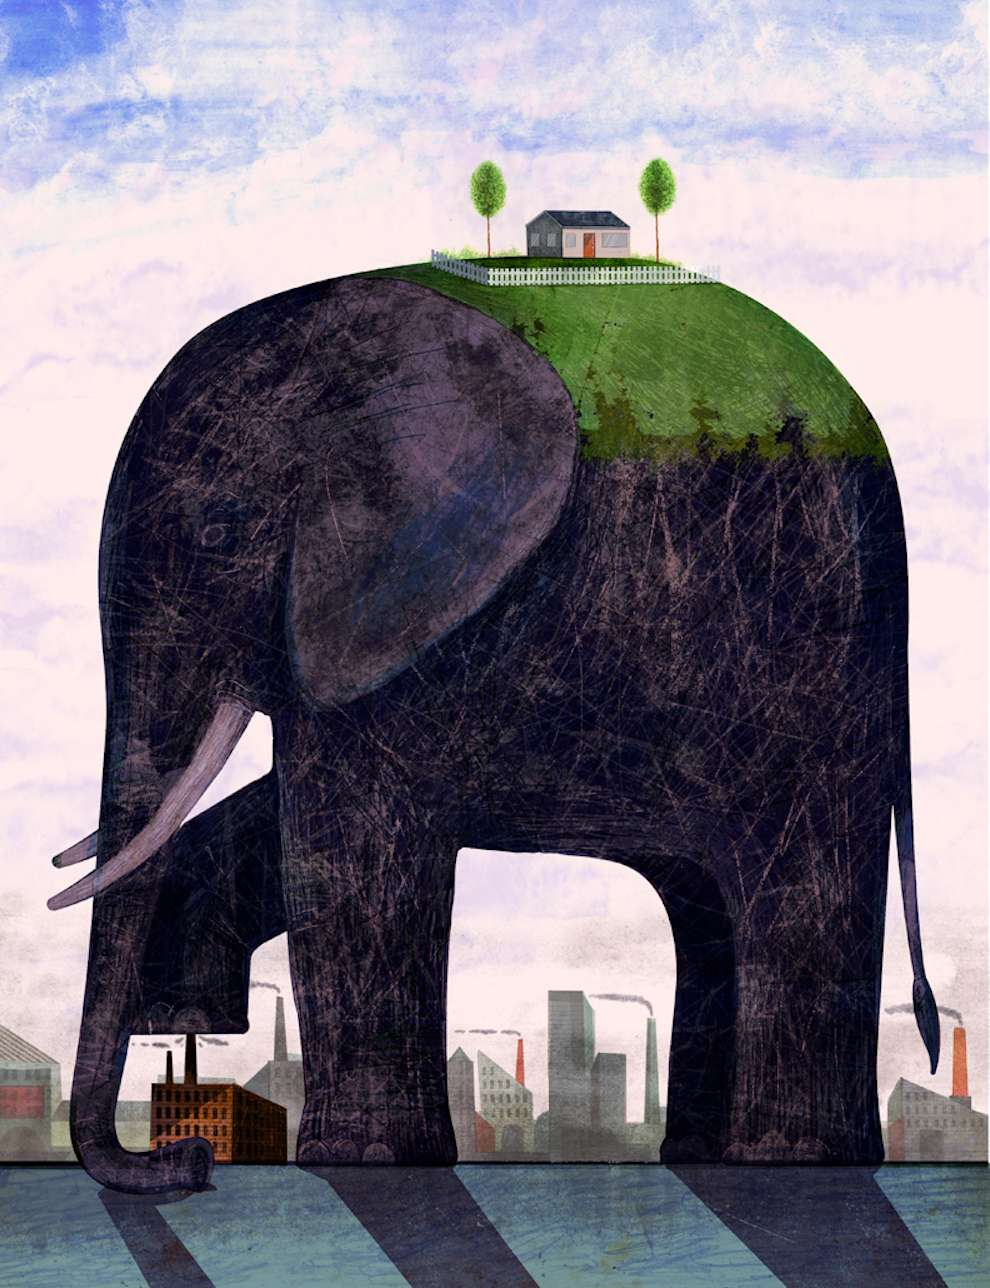 Christian Northeast, Illustration of a gigantic elephant with a house and garden on his back